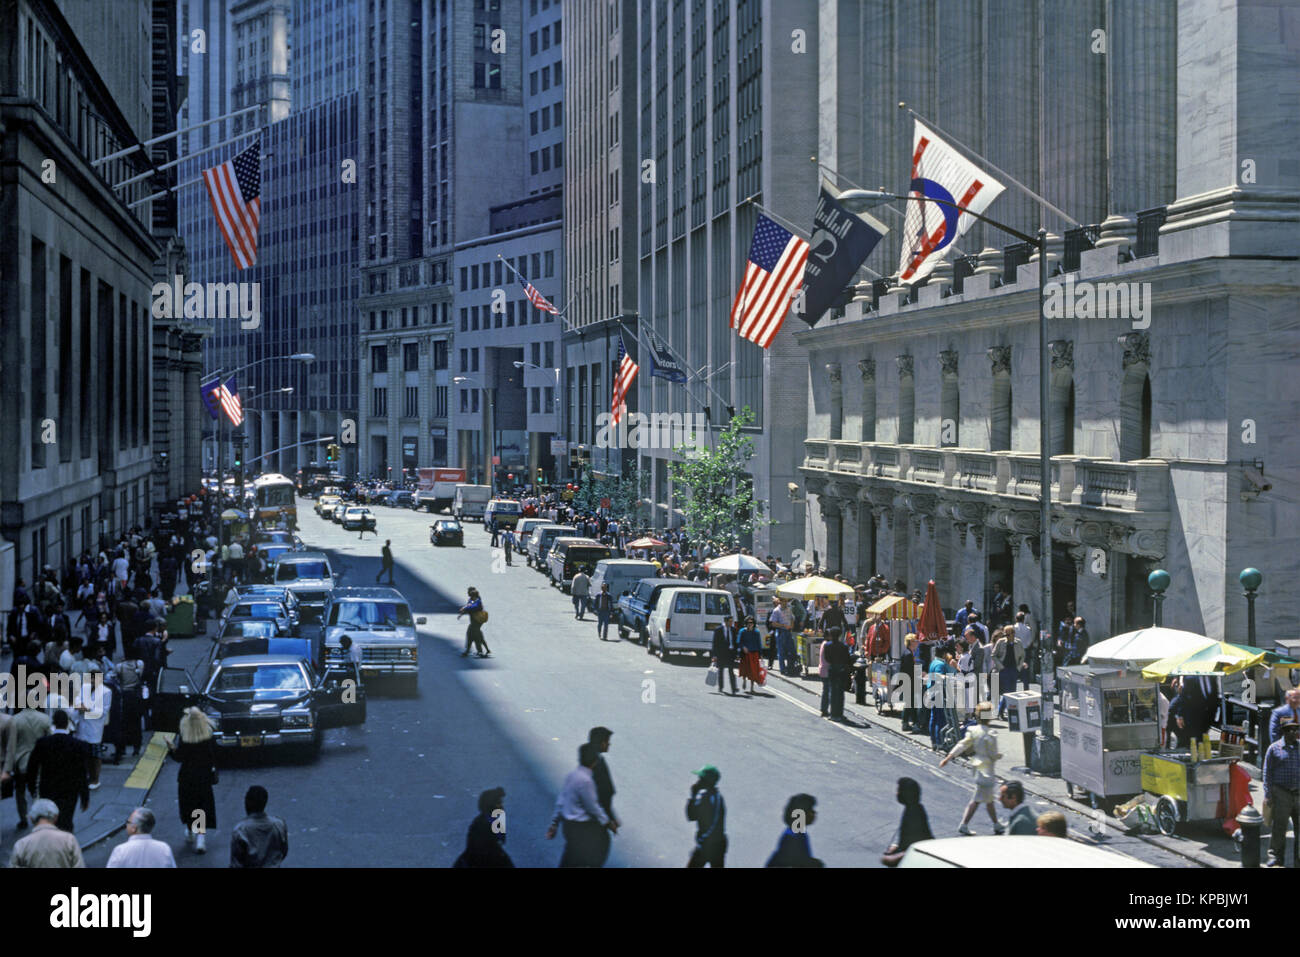 80s Nyc Stock Photos Amp 80s Nyc Stock Images Alamy